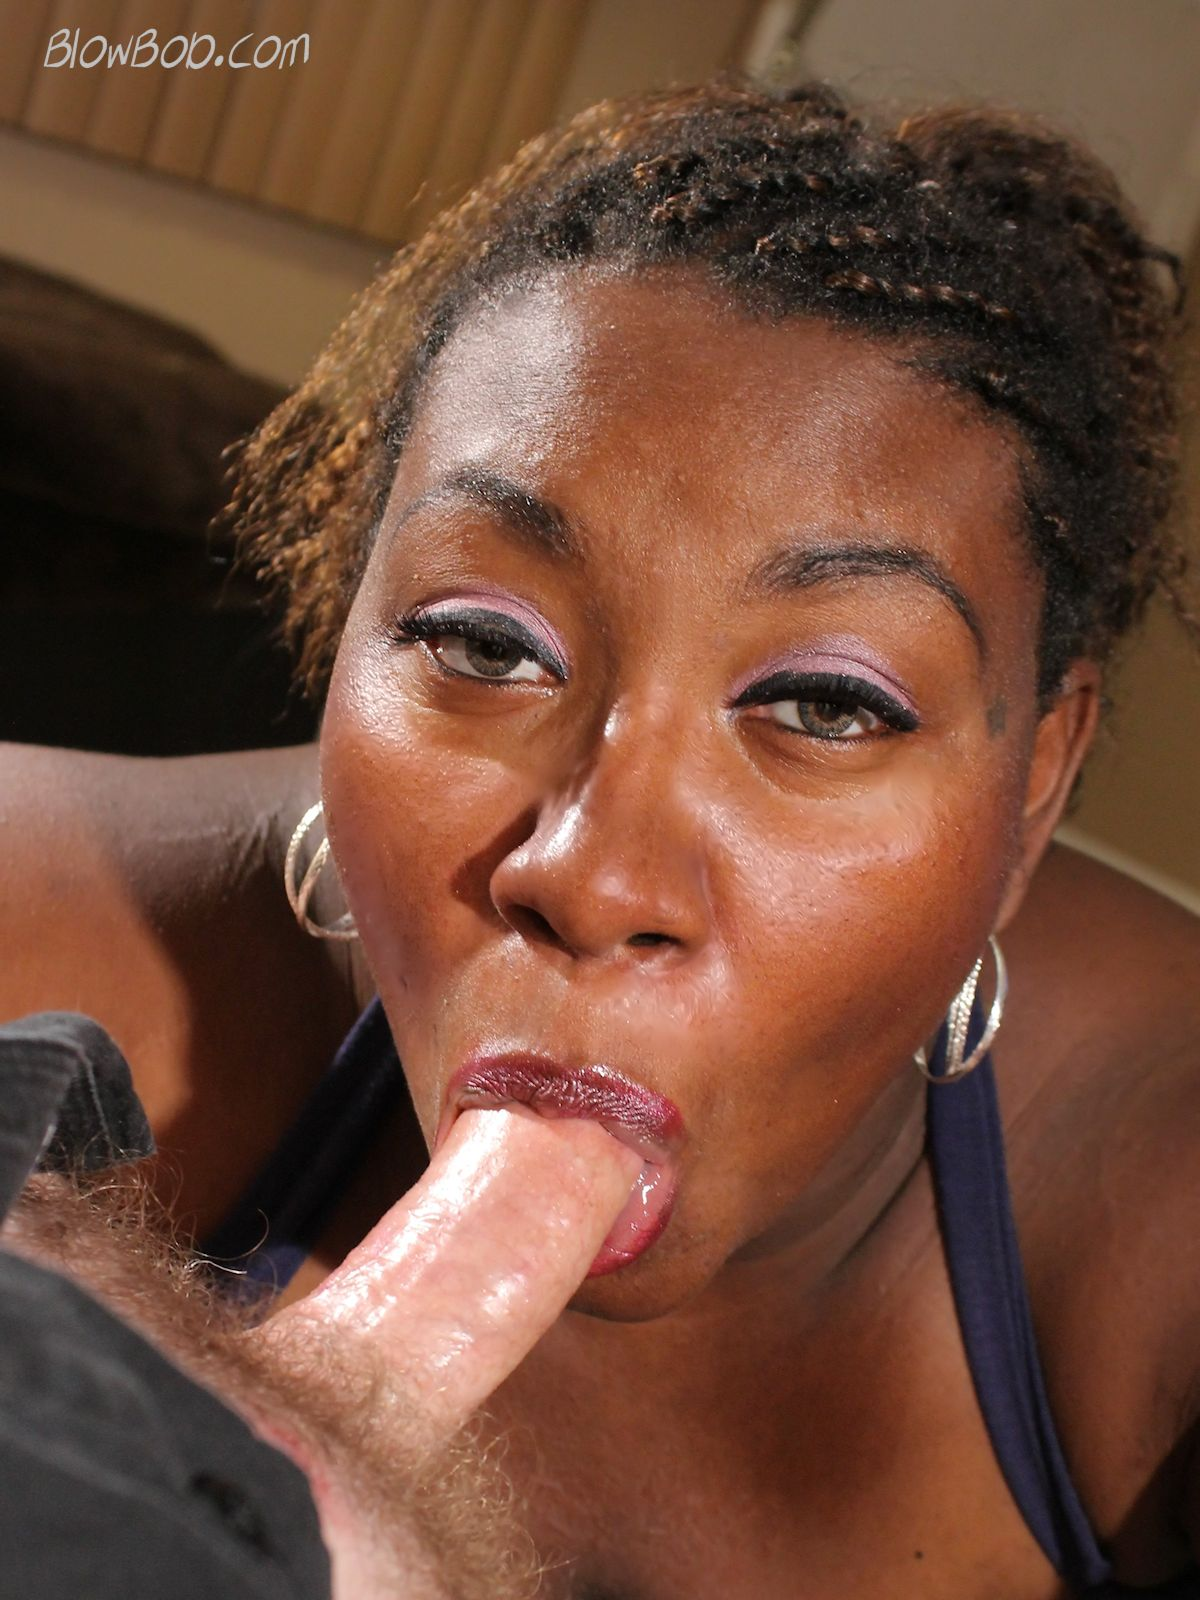 White dick handjob black chick